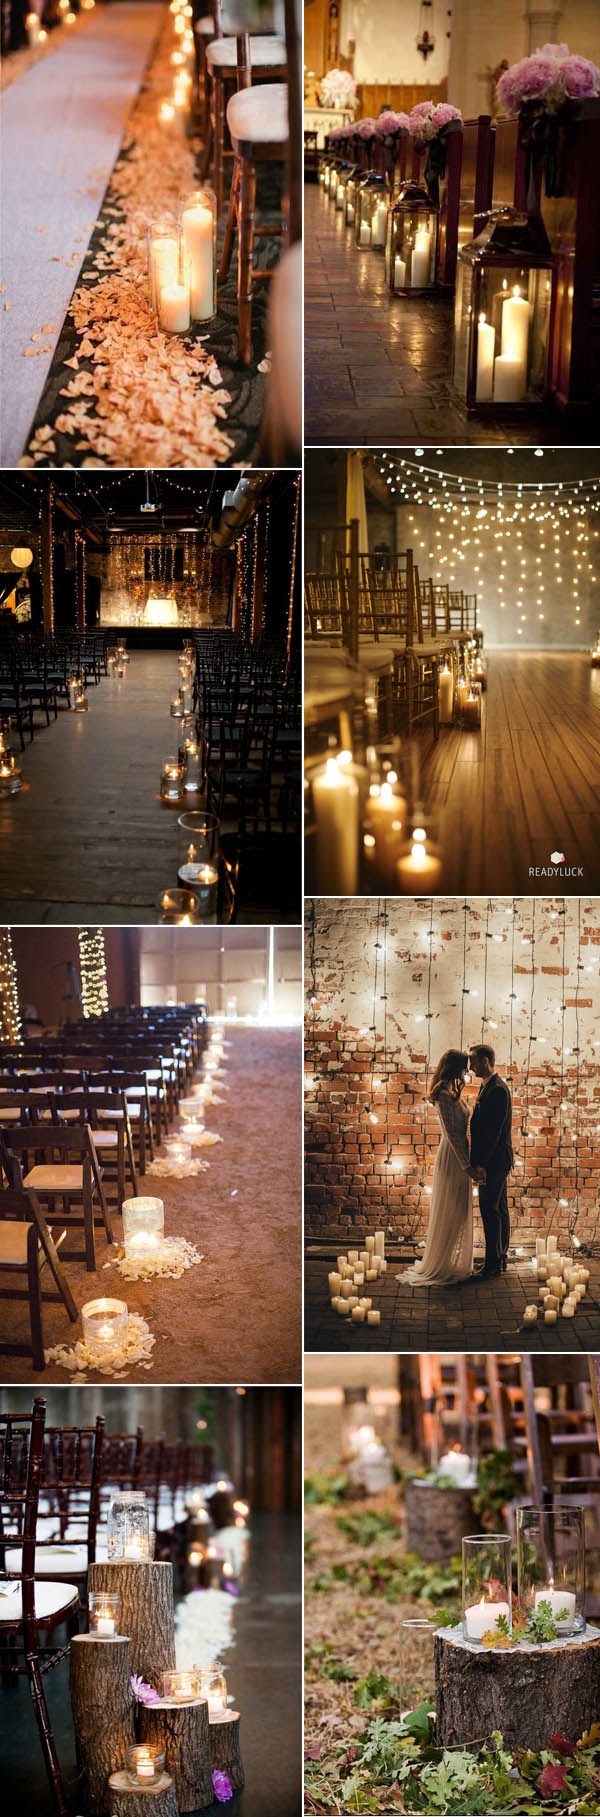 Candle Decorations For Wedding Ceremony 50 Fancy Candlelight Ideas To Add Romance To Your Weddings